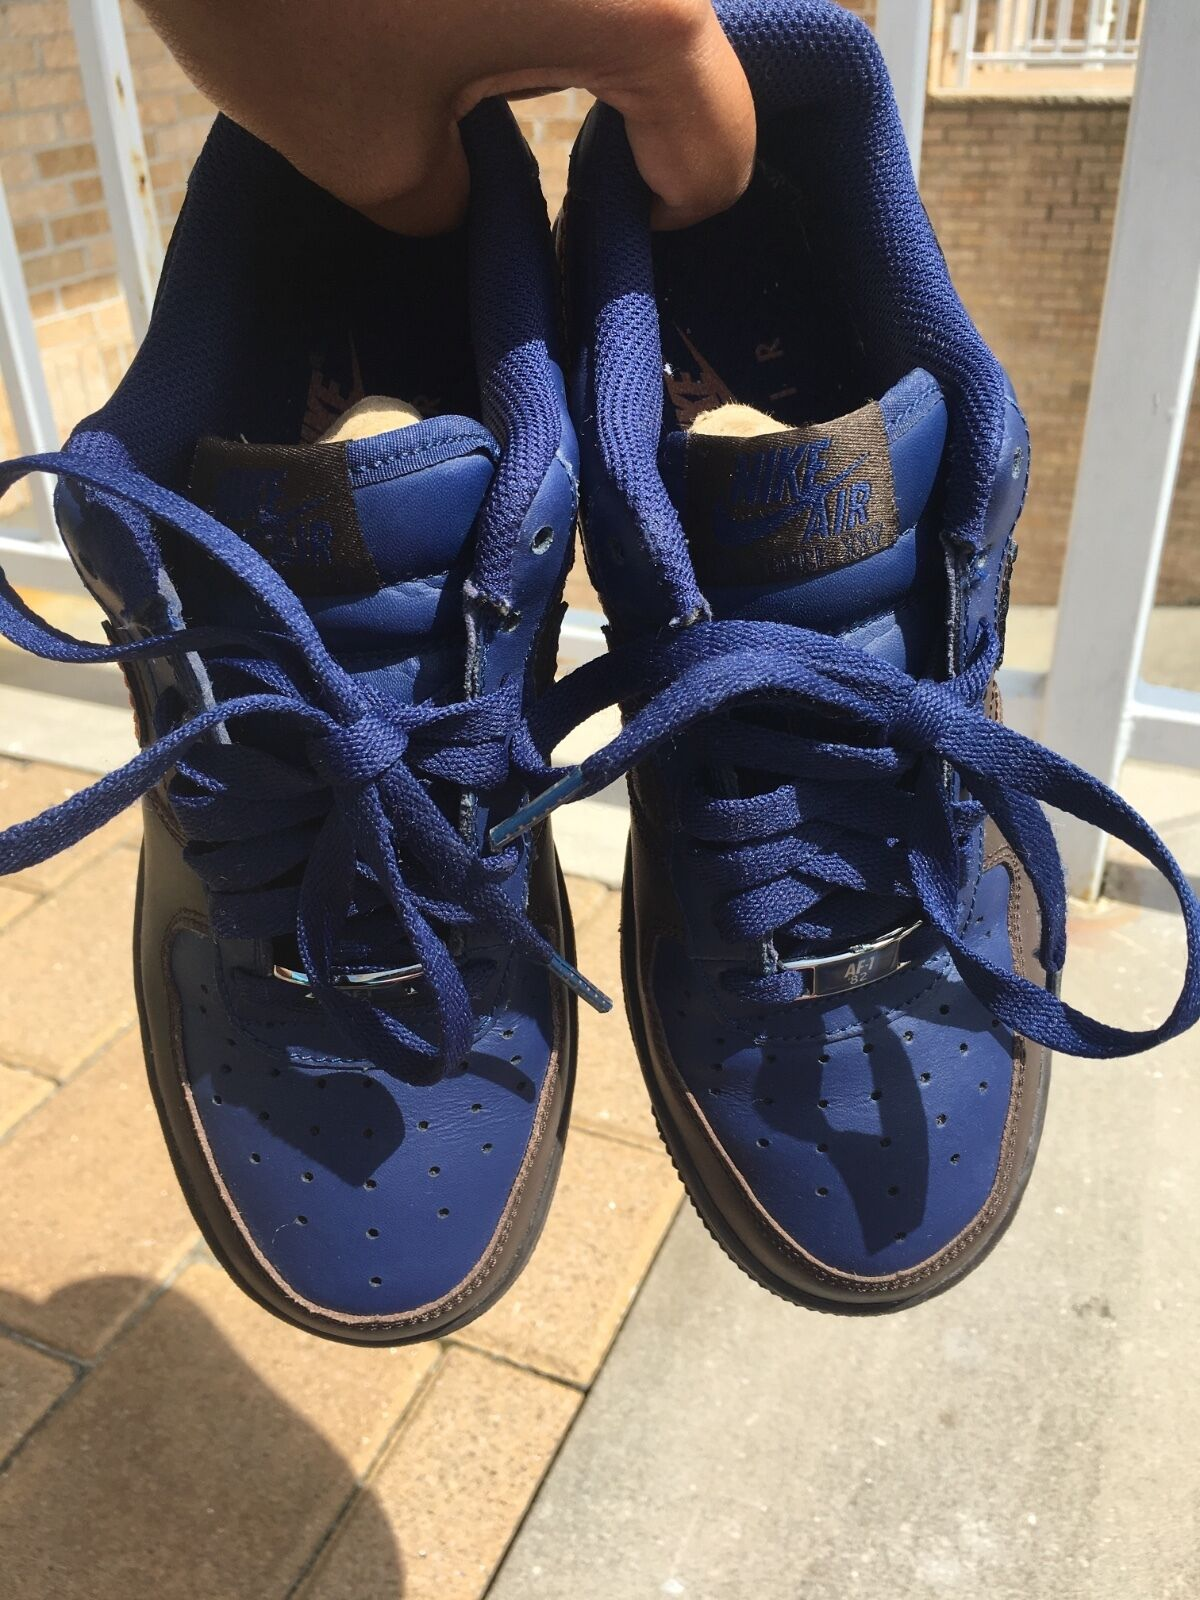 Air force ones big kids size 5. Good condition